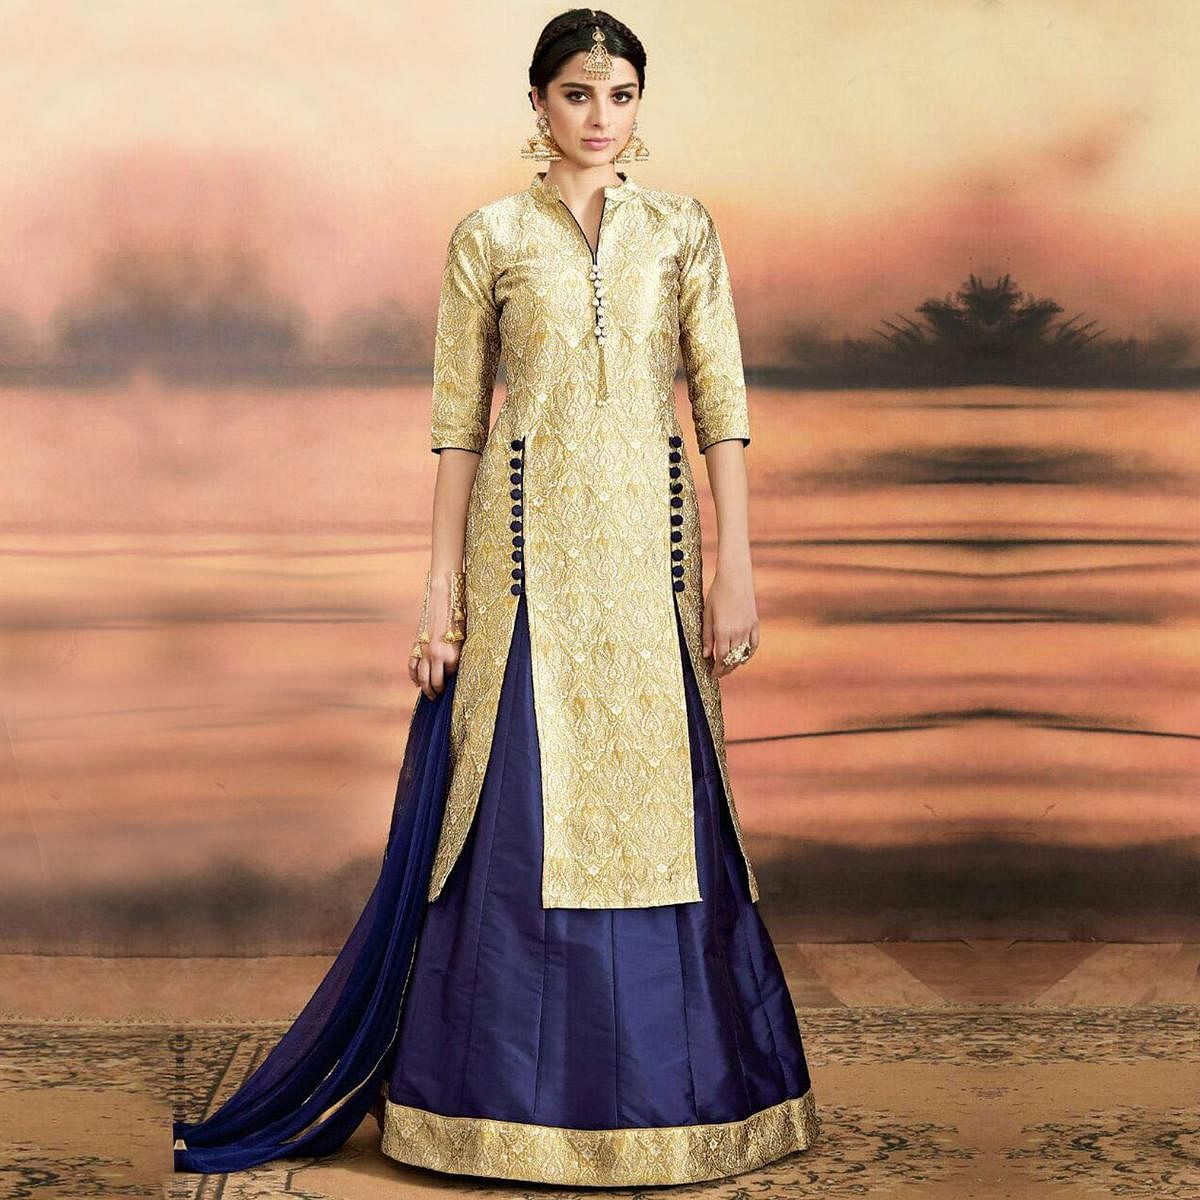 c2f6b88d5d Buy Golden - Navy Blue Lehenga Suit for womens online India, Best Prices,  Reviews - peachmode